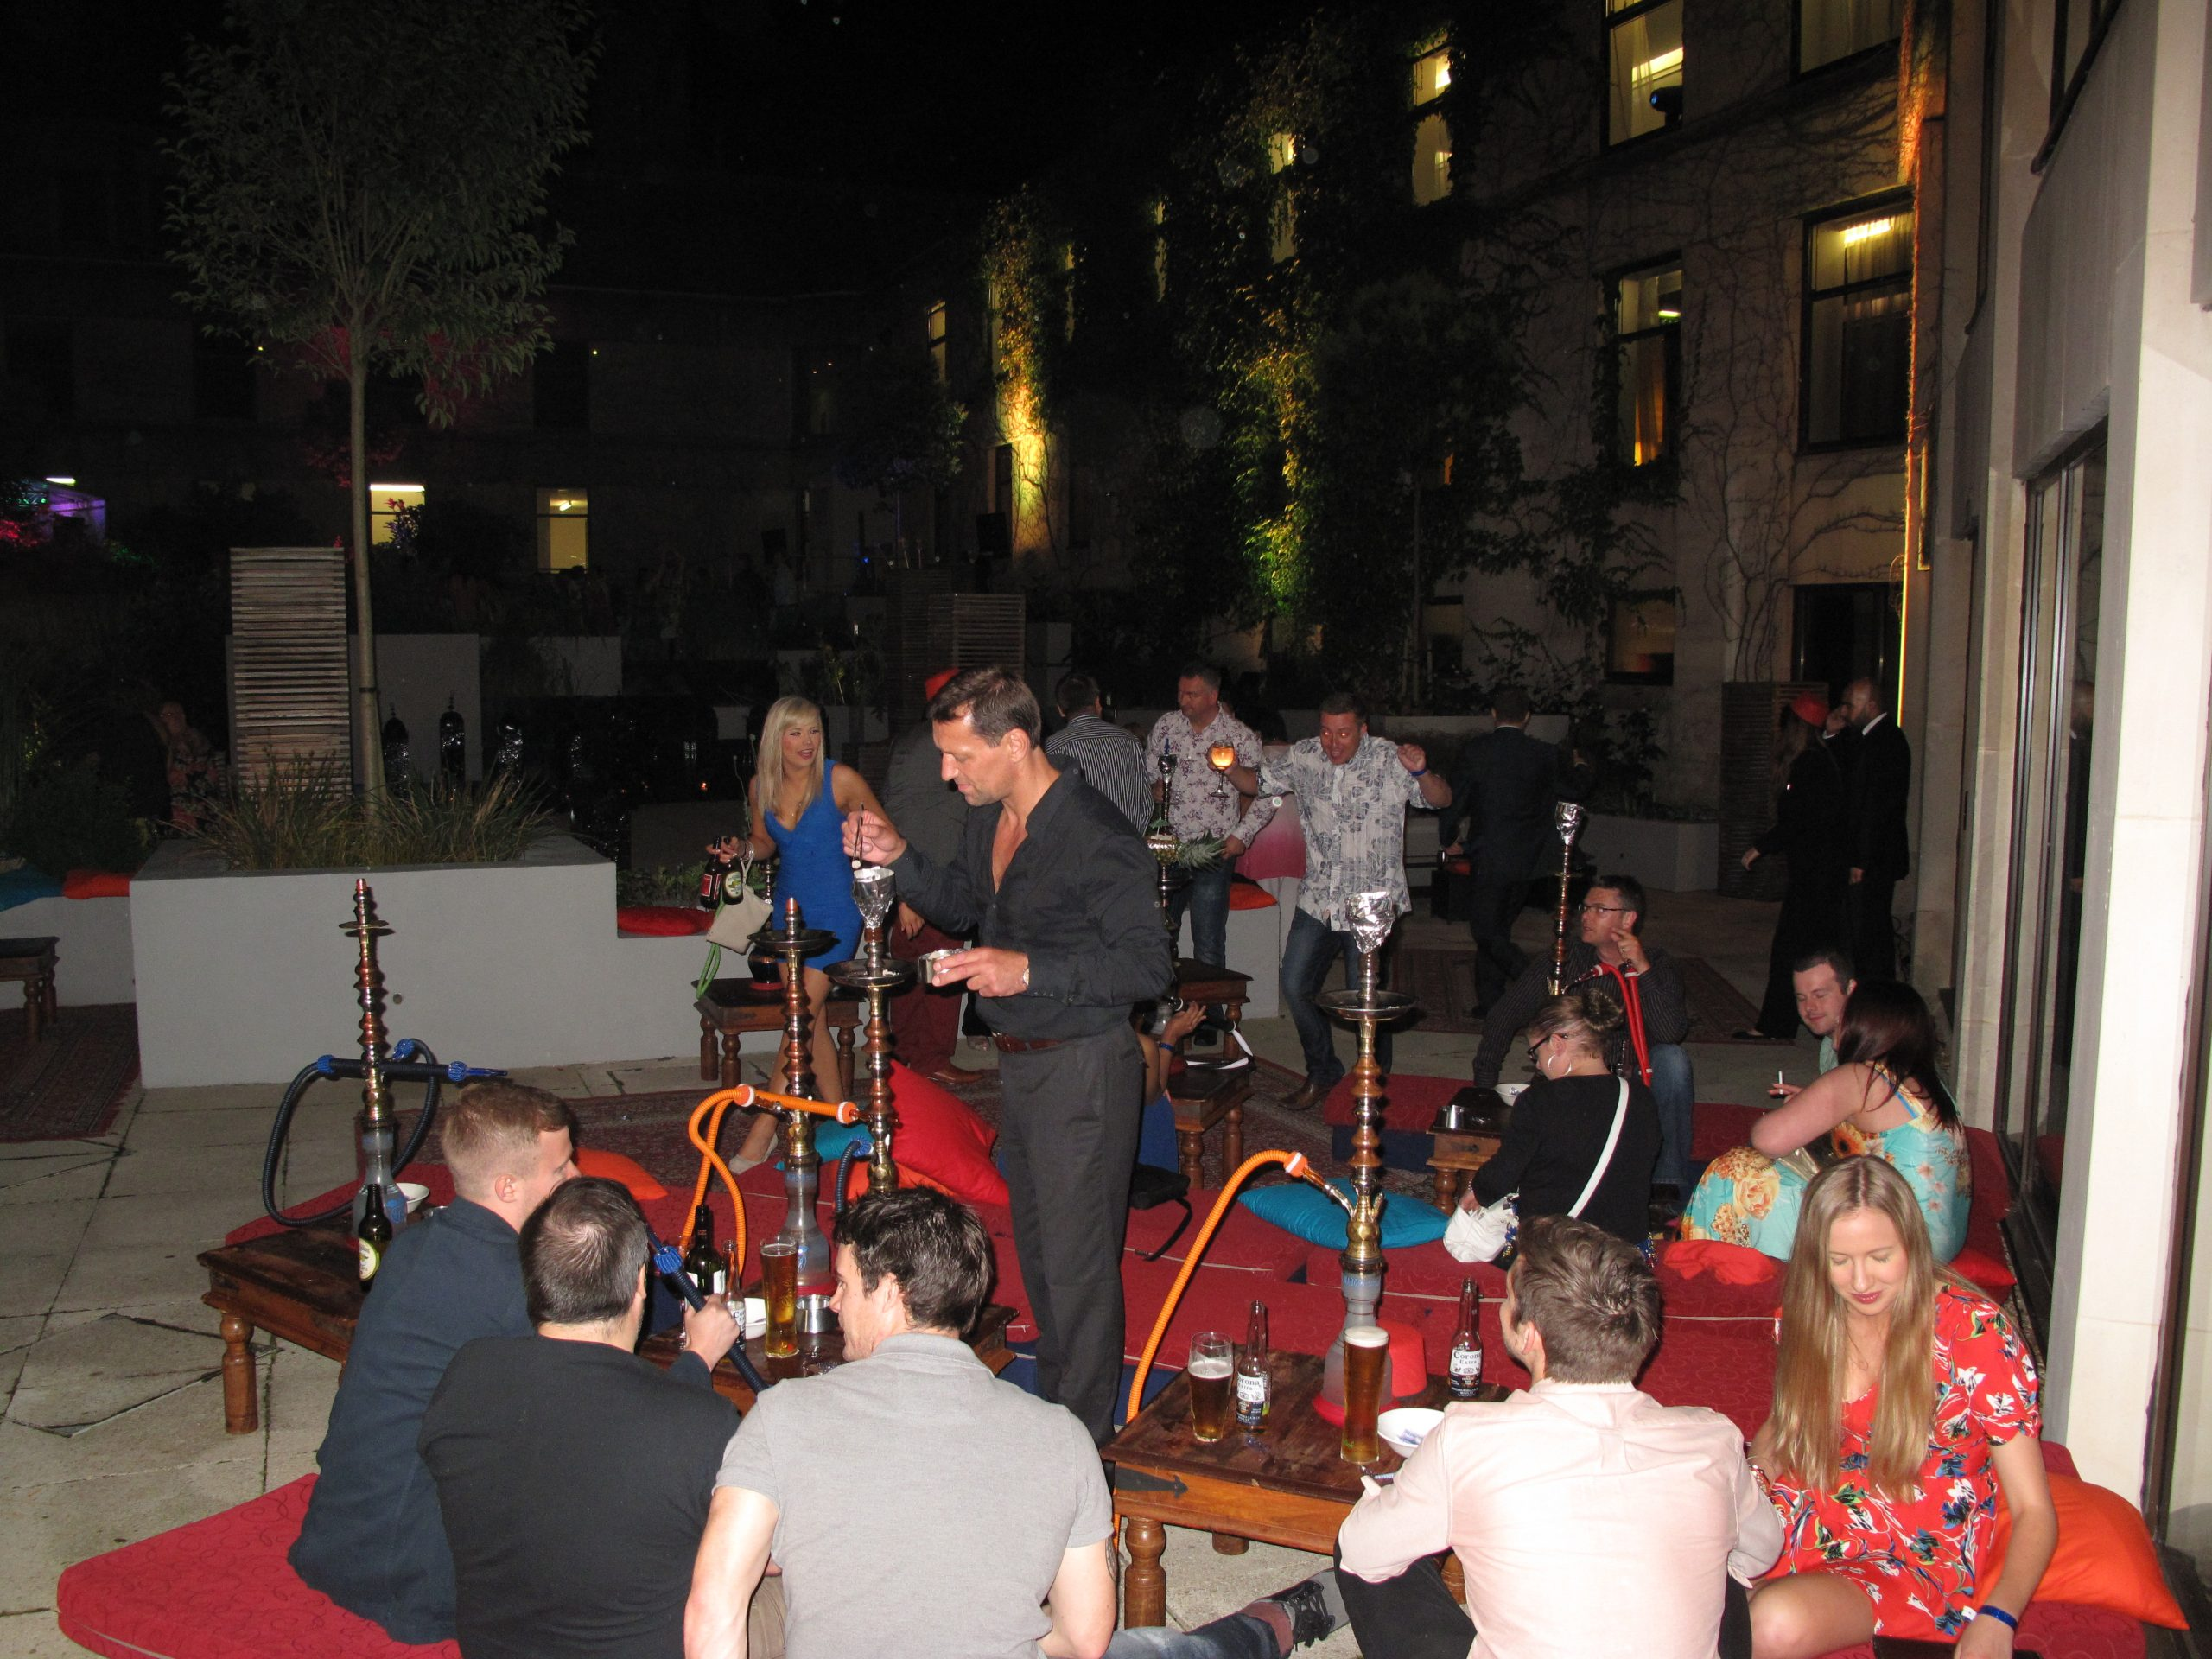 Shisha Hire Surrey - Weddings, 18 and 21 Birthday Parties, Corporate Events, Themed Parties and House Parties